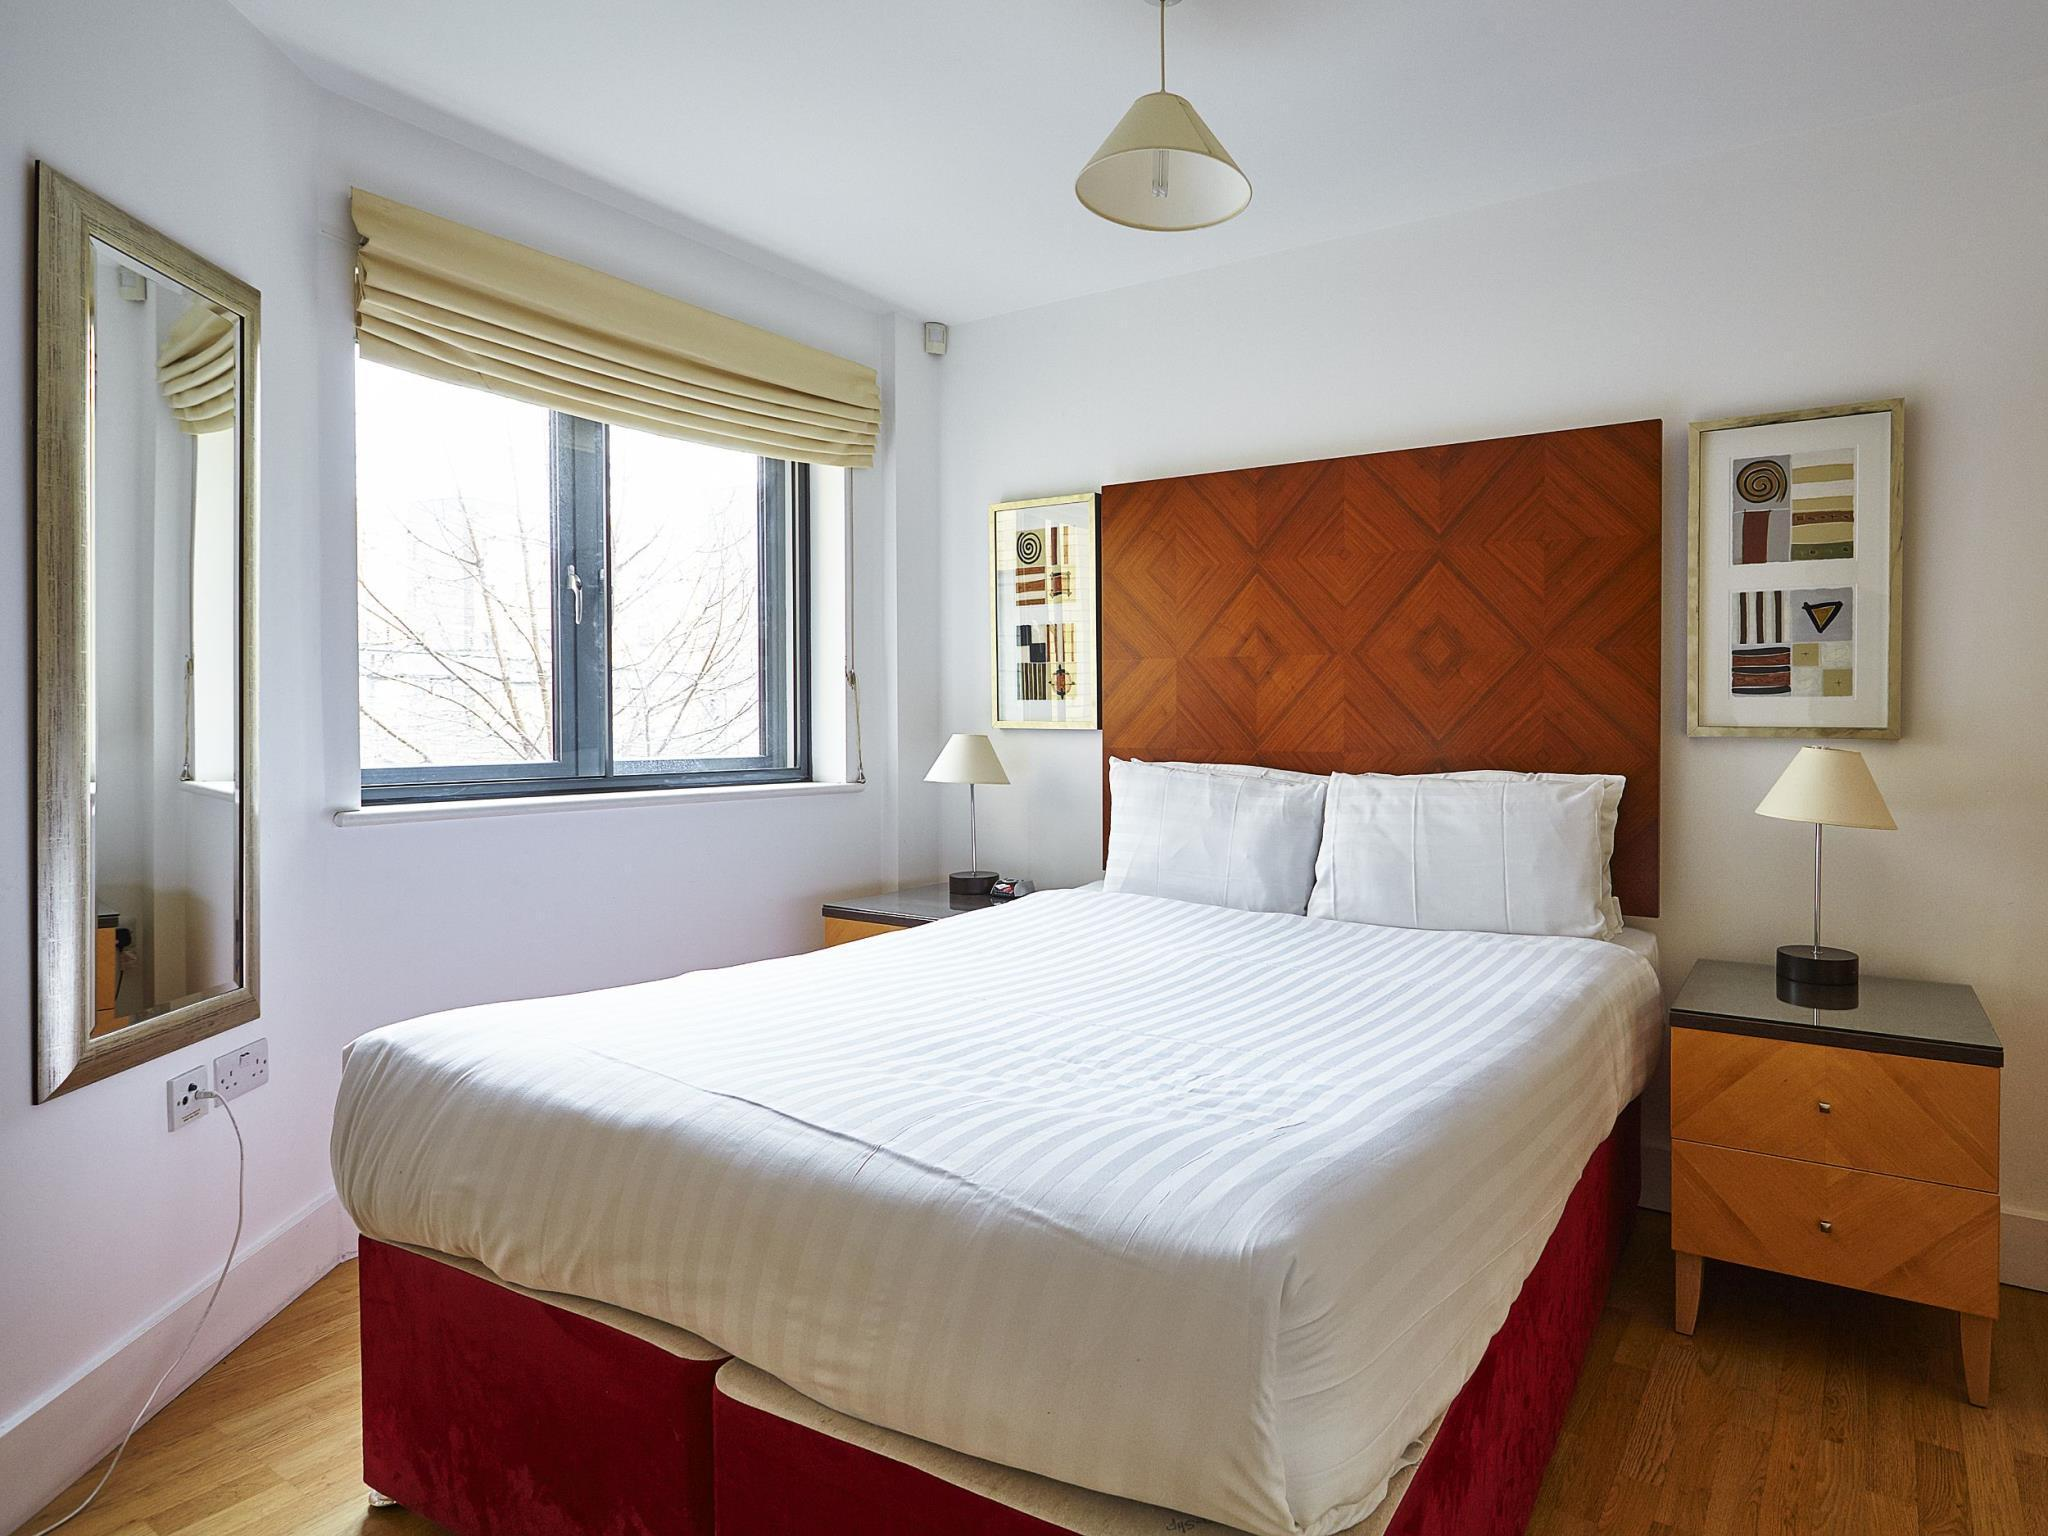 Best Price On Marlin Apartments Stratford In London Reviews